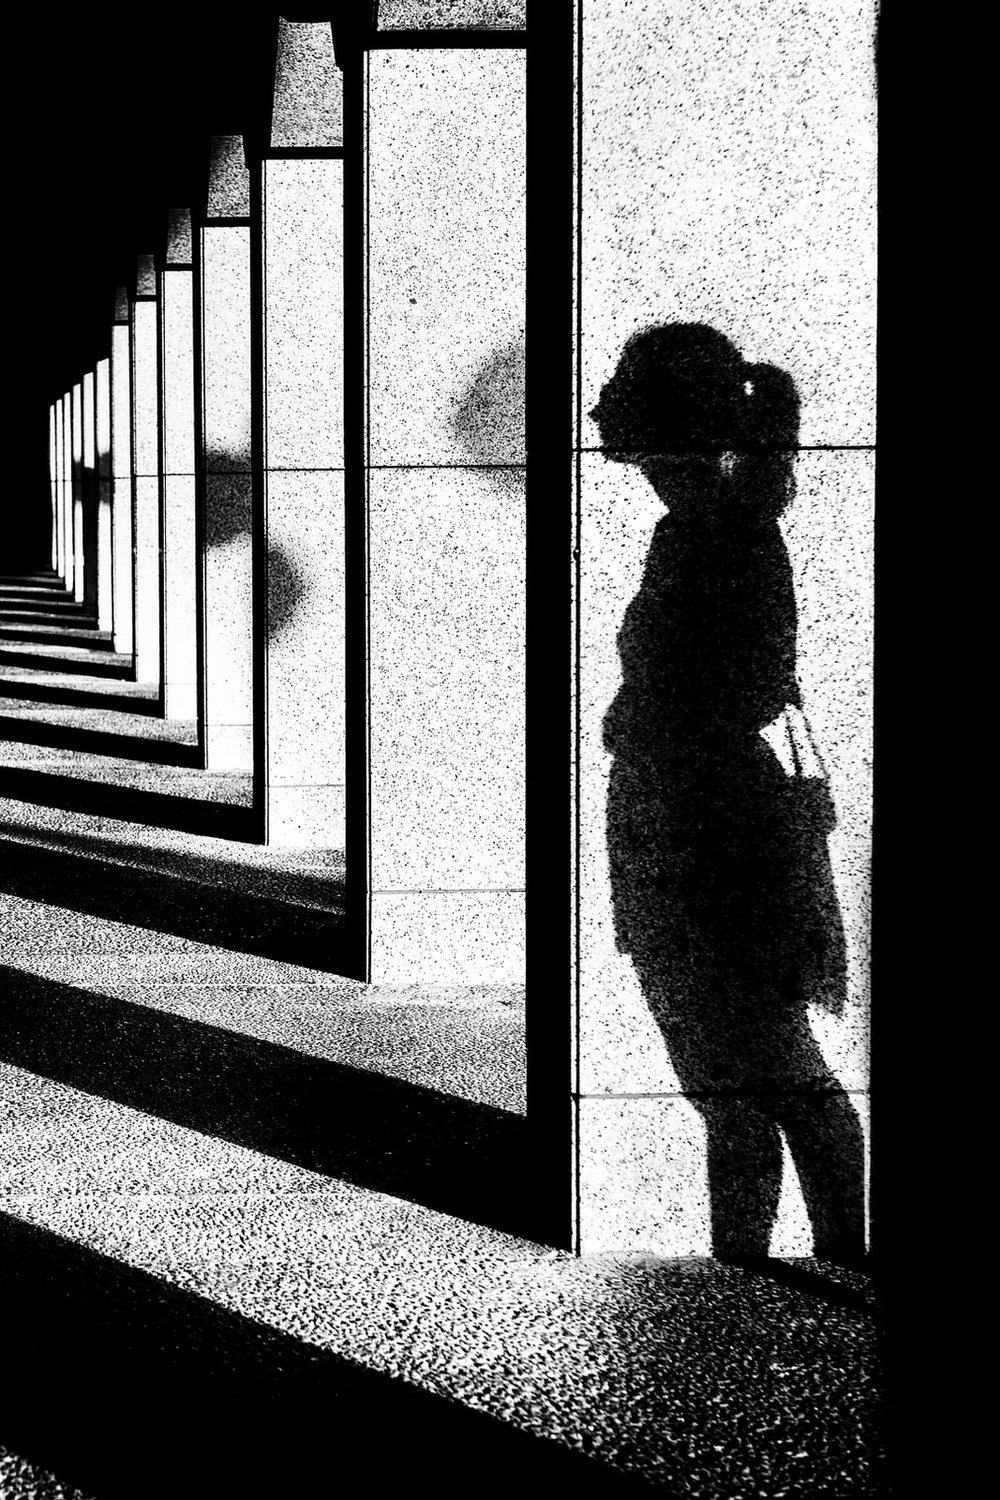 Alan Schaller - London Street Photographer - Metropolis22.jpg